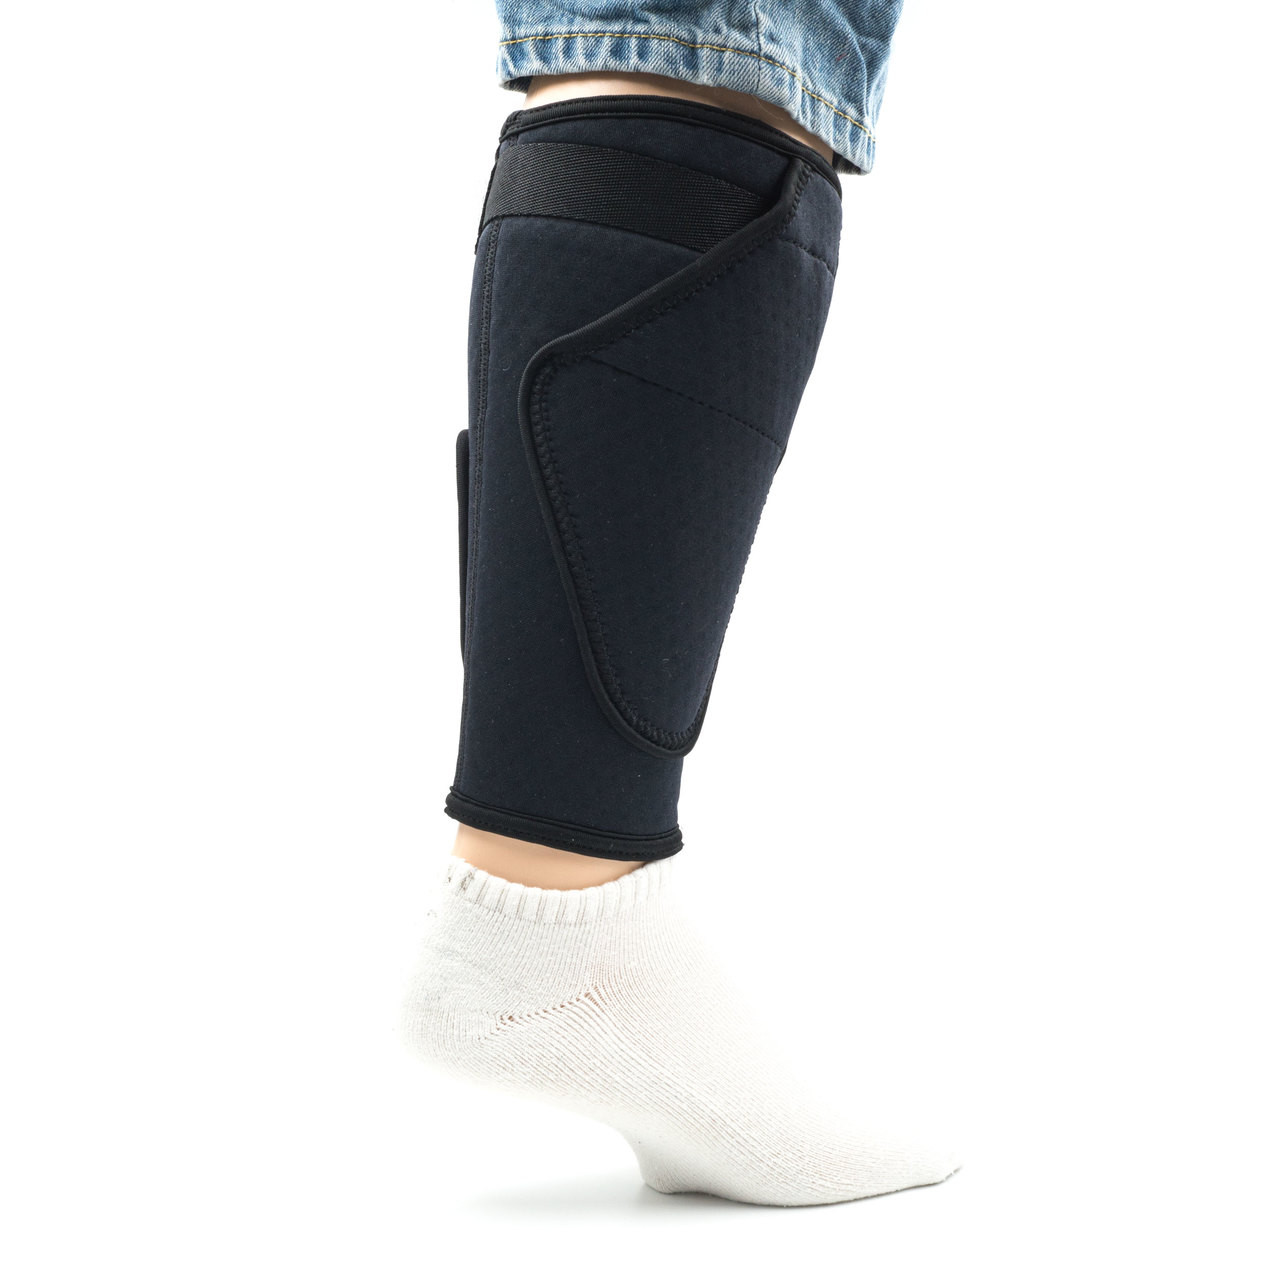 The BUGBite Ankle Holster